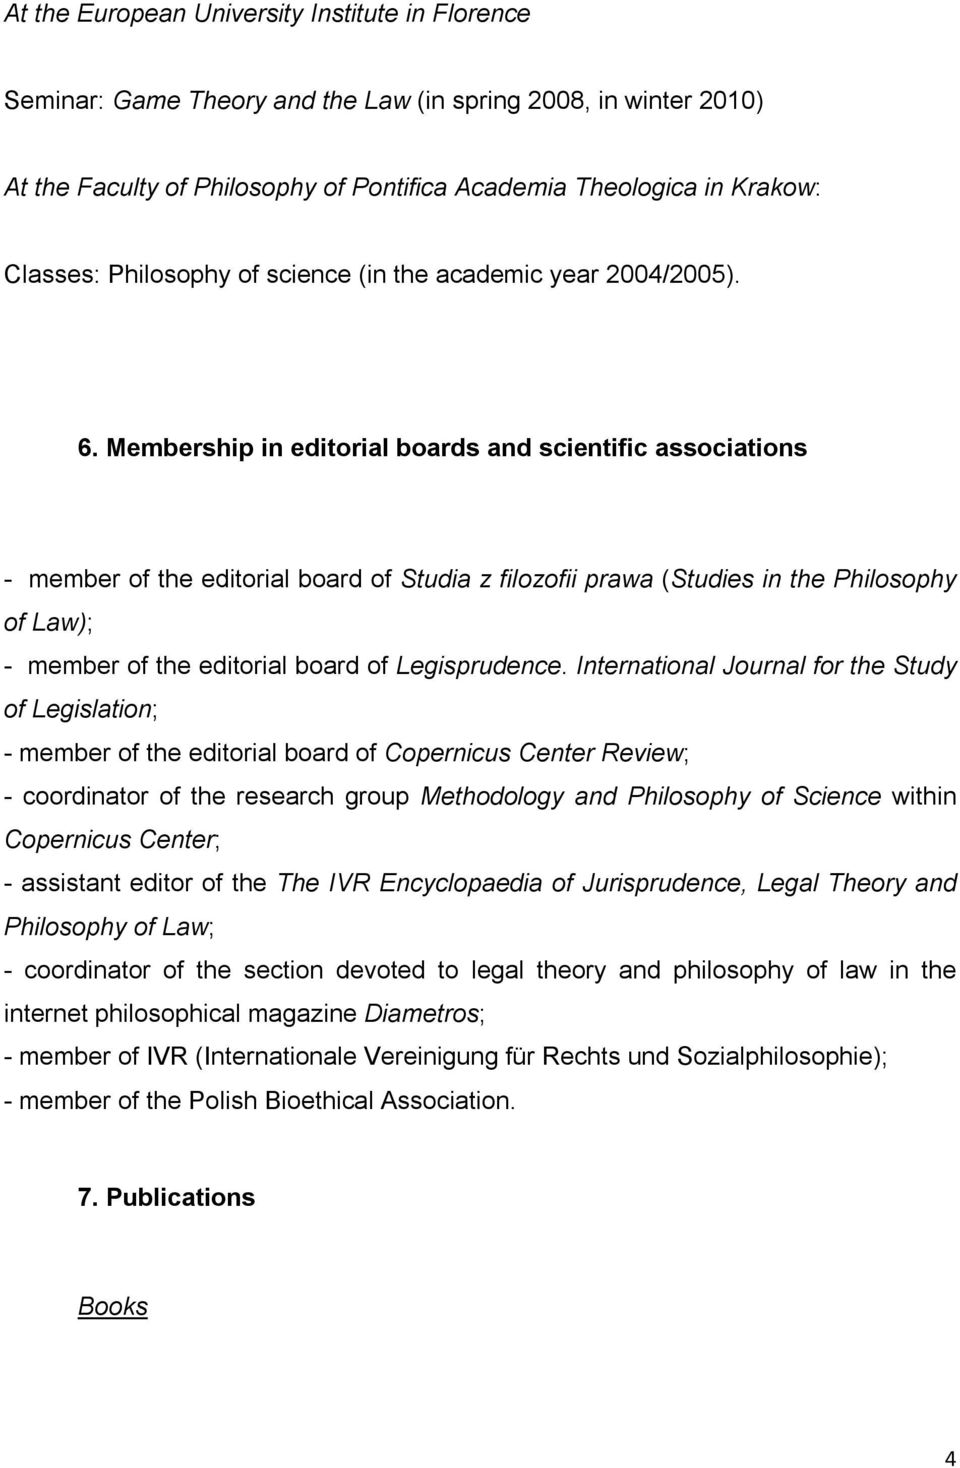 Membership in editorial boards and scientific associations - member of the editorial board of Studia z filozofii prawa (Studies in the Philosophy of Law); - member of the editorial board of